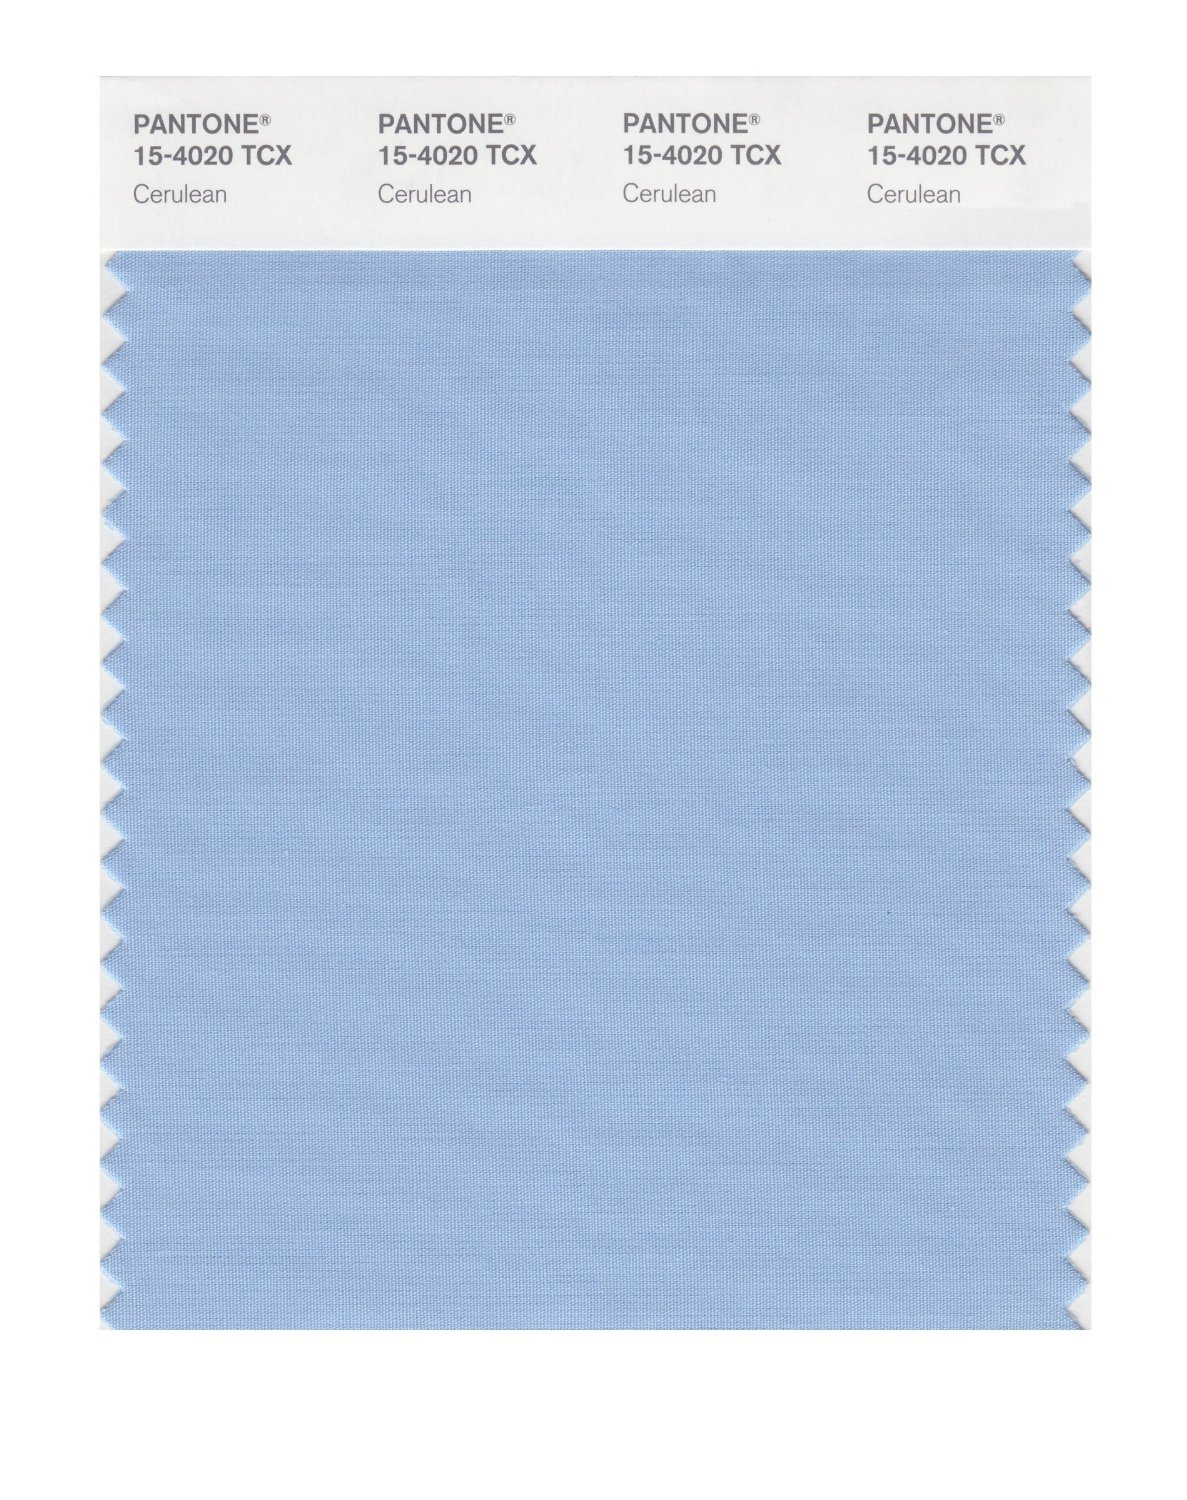 Pantone Smart Swatch 15-4020 Cerulean